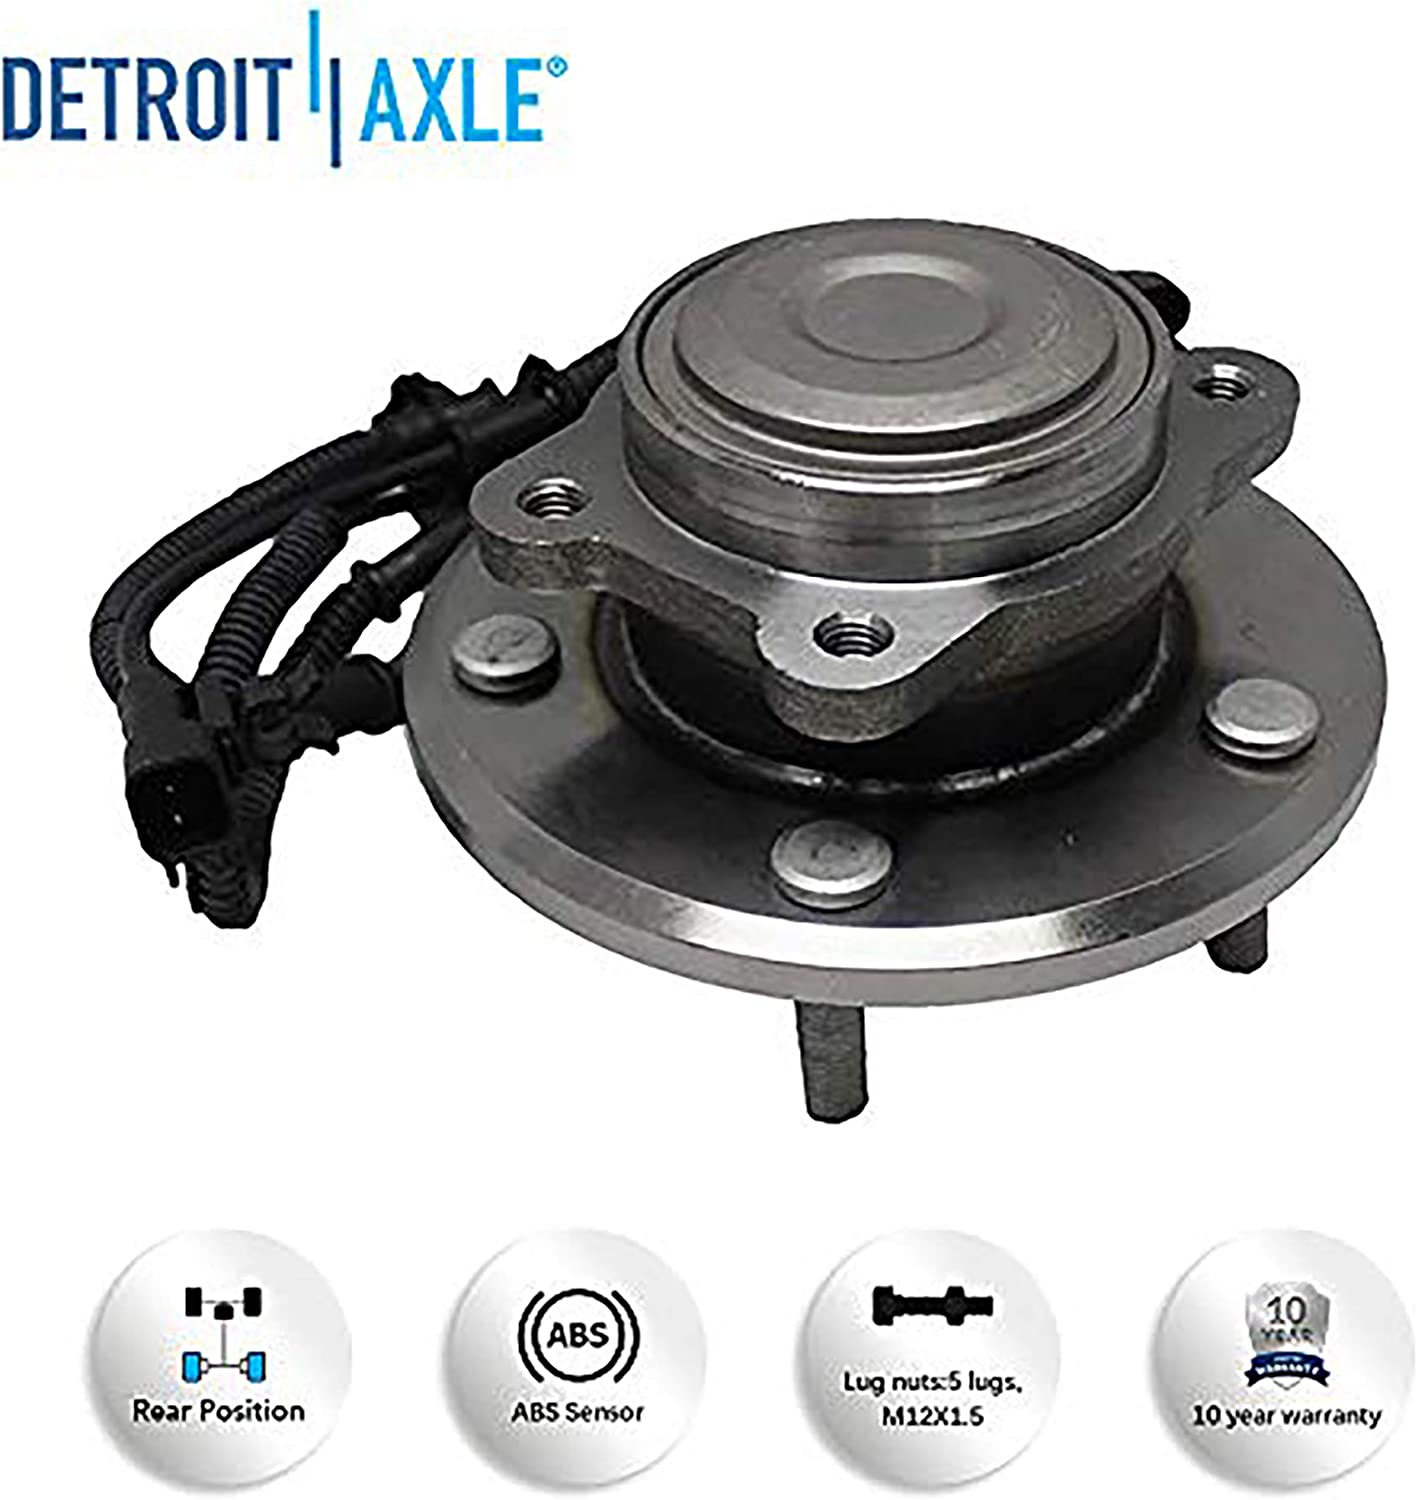 - 2012-2015 Ram C//V - 2013-2014 Volkswagen Routan 512493 Rear Wheel Bearing and Hub Assembly Pair Replacement for 2012-2019 Dodge Grand Caravan - 2012-2016 Town /& Country Detroit Axle